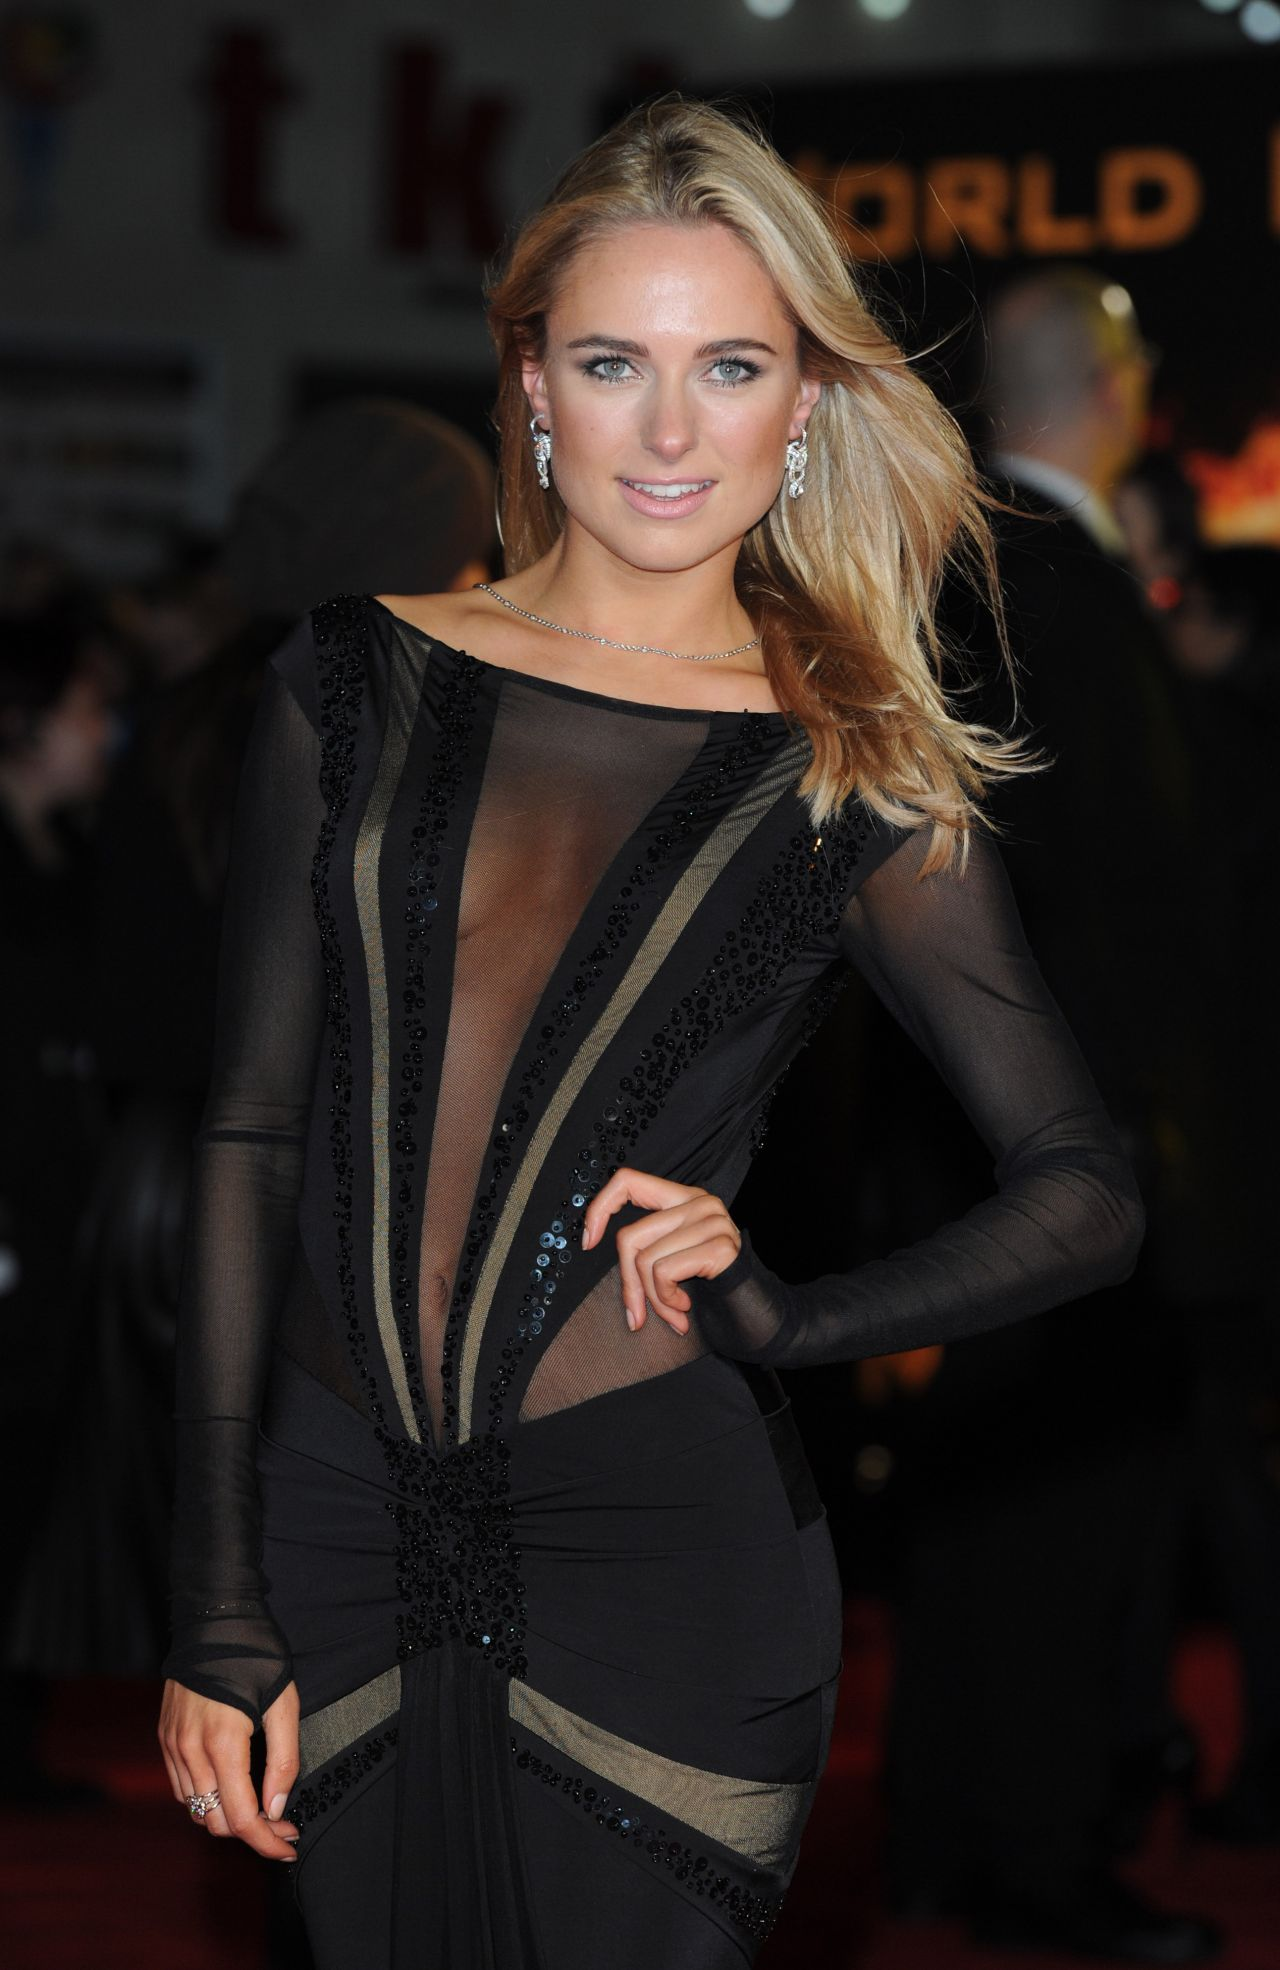 Kimberley Garner – 'The Hunger Games: Mockingjay Part 1′ Premiere in London